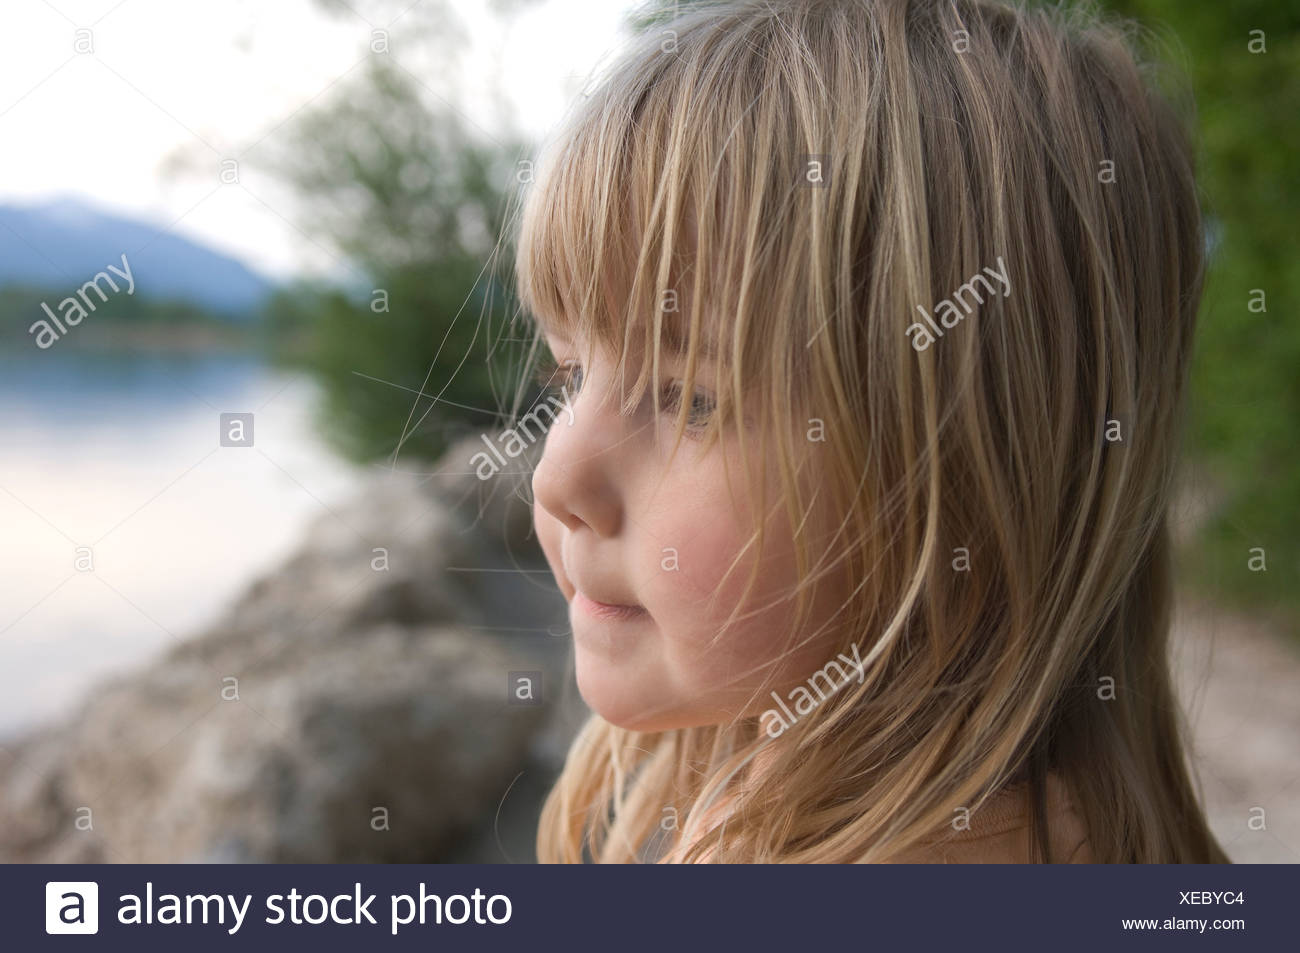 Portrait of young girl standing on riverbank Photo Stock